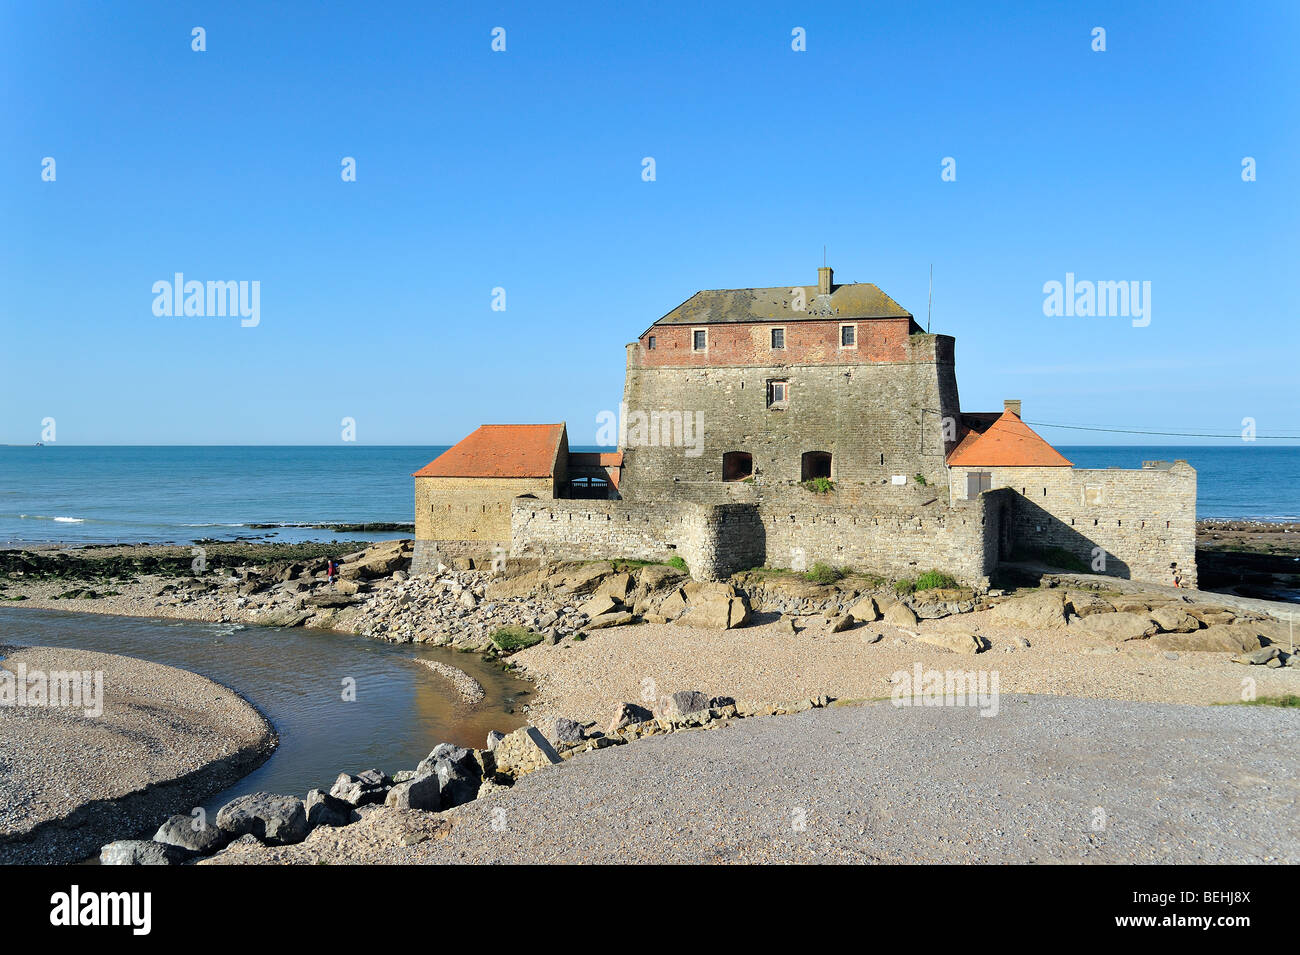 The Vauban tower along the North Sea coast at Ambleteuse, Côte d'Opale, Nord-Pas-de-Calais France - Stock Image